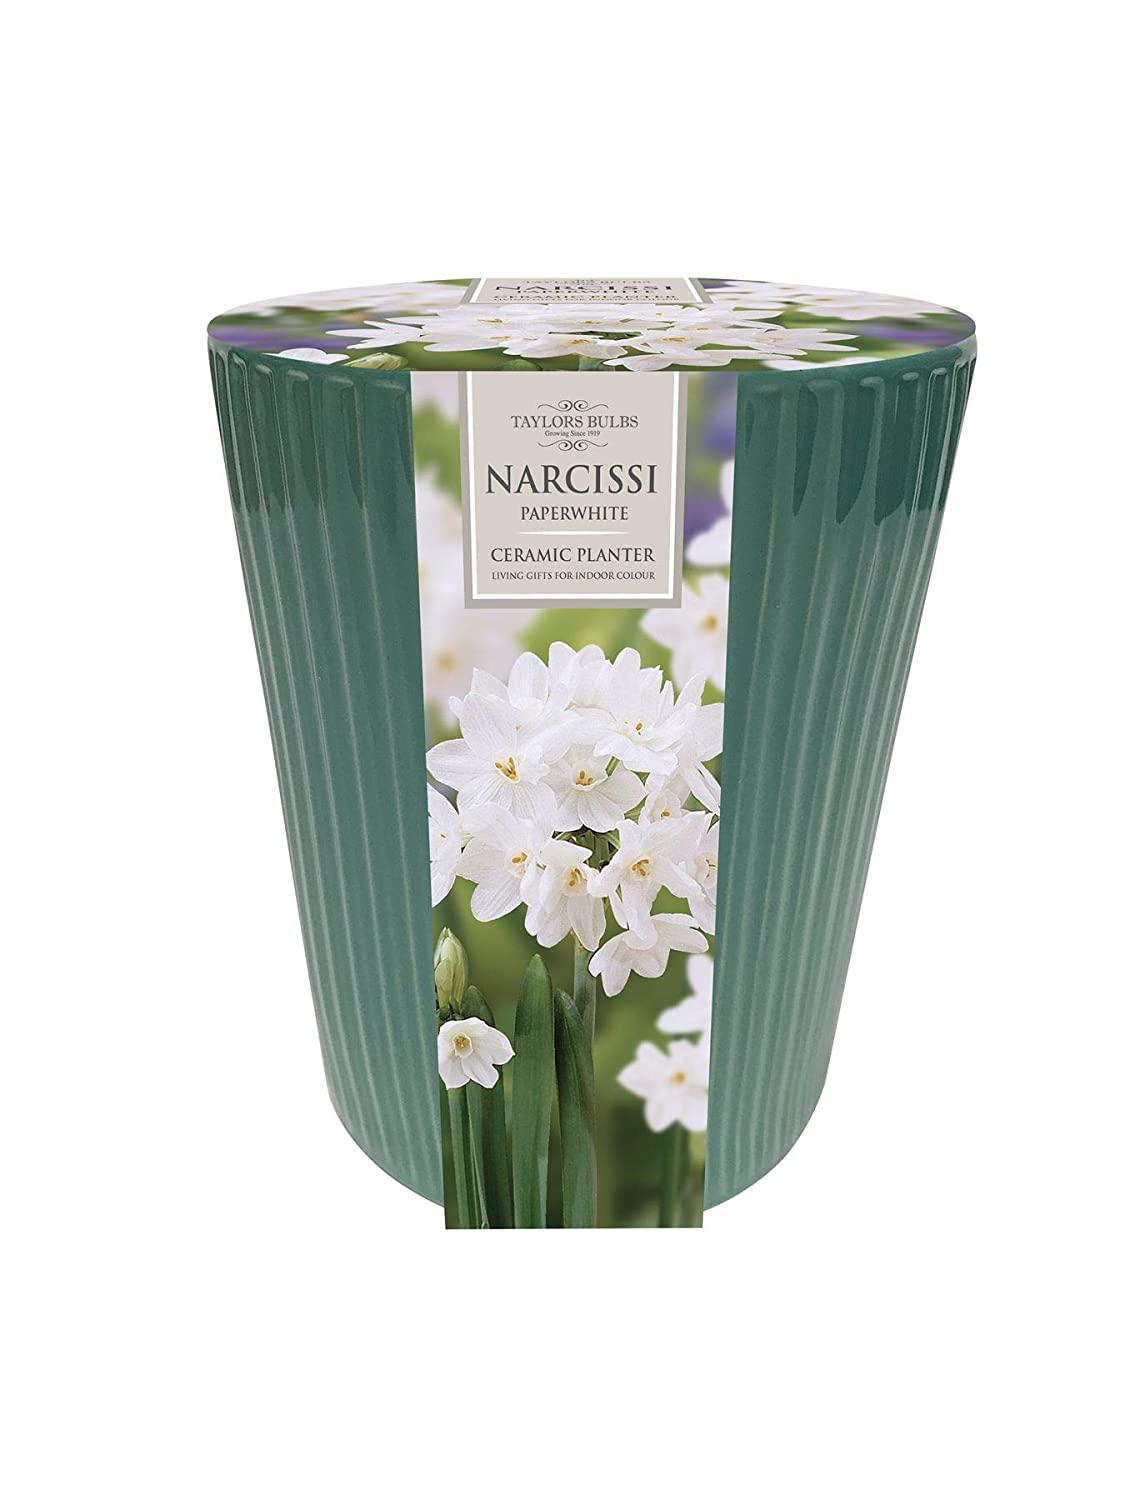 Indoor Paperwhite Ribbed Narcissi Planter Gift Set Taylors